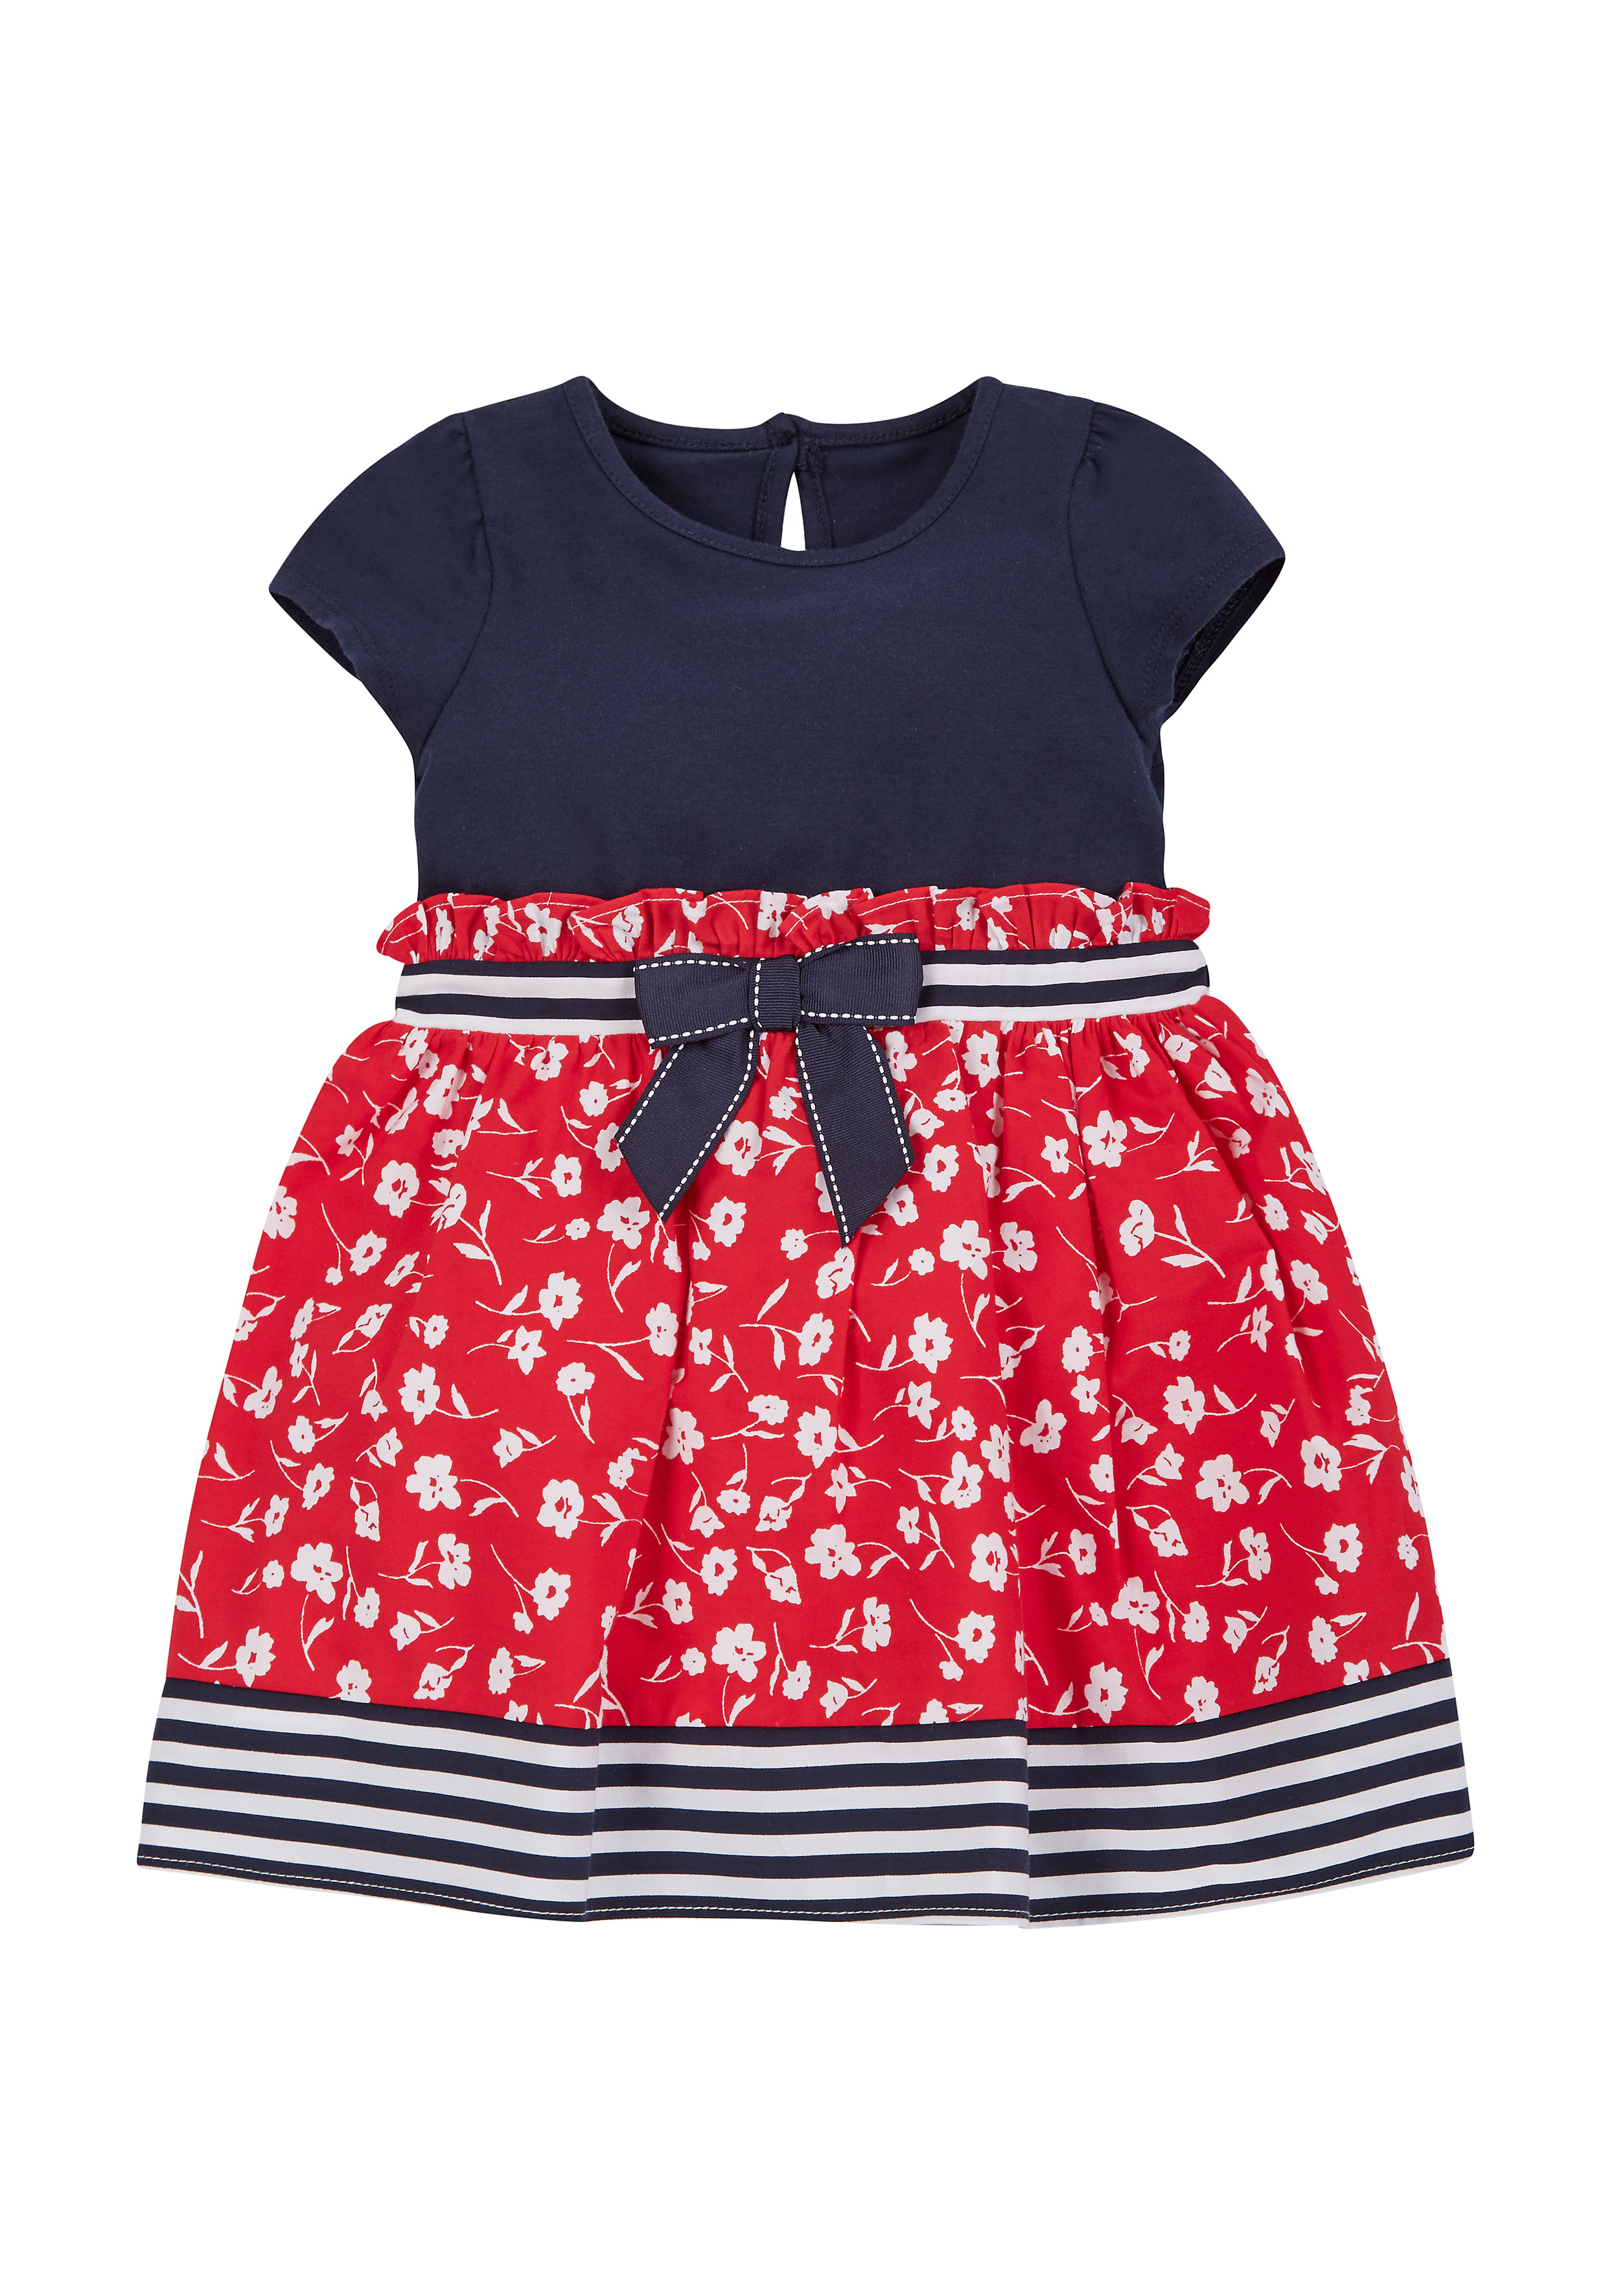 Mothercare | Girls Red Navy Floral Dress